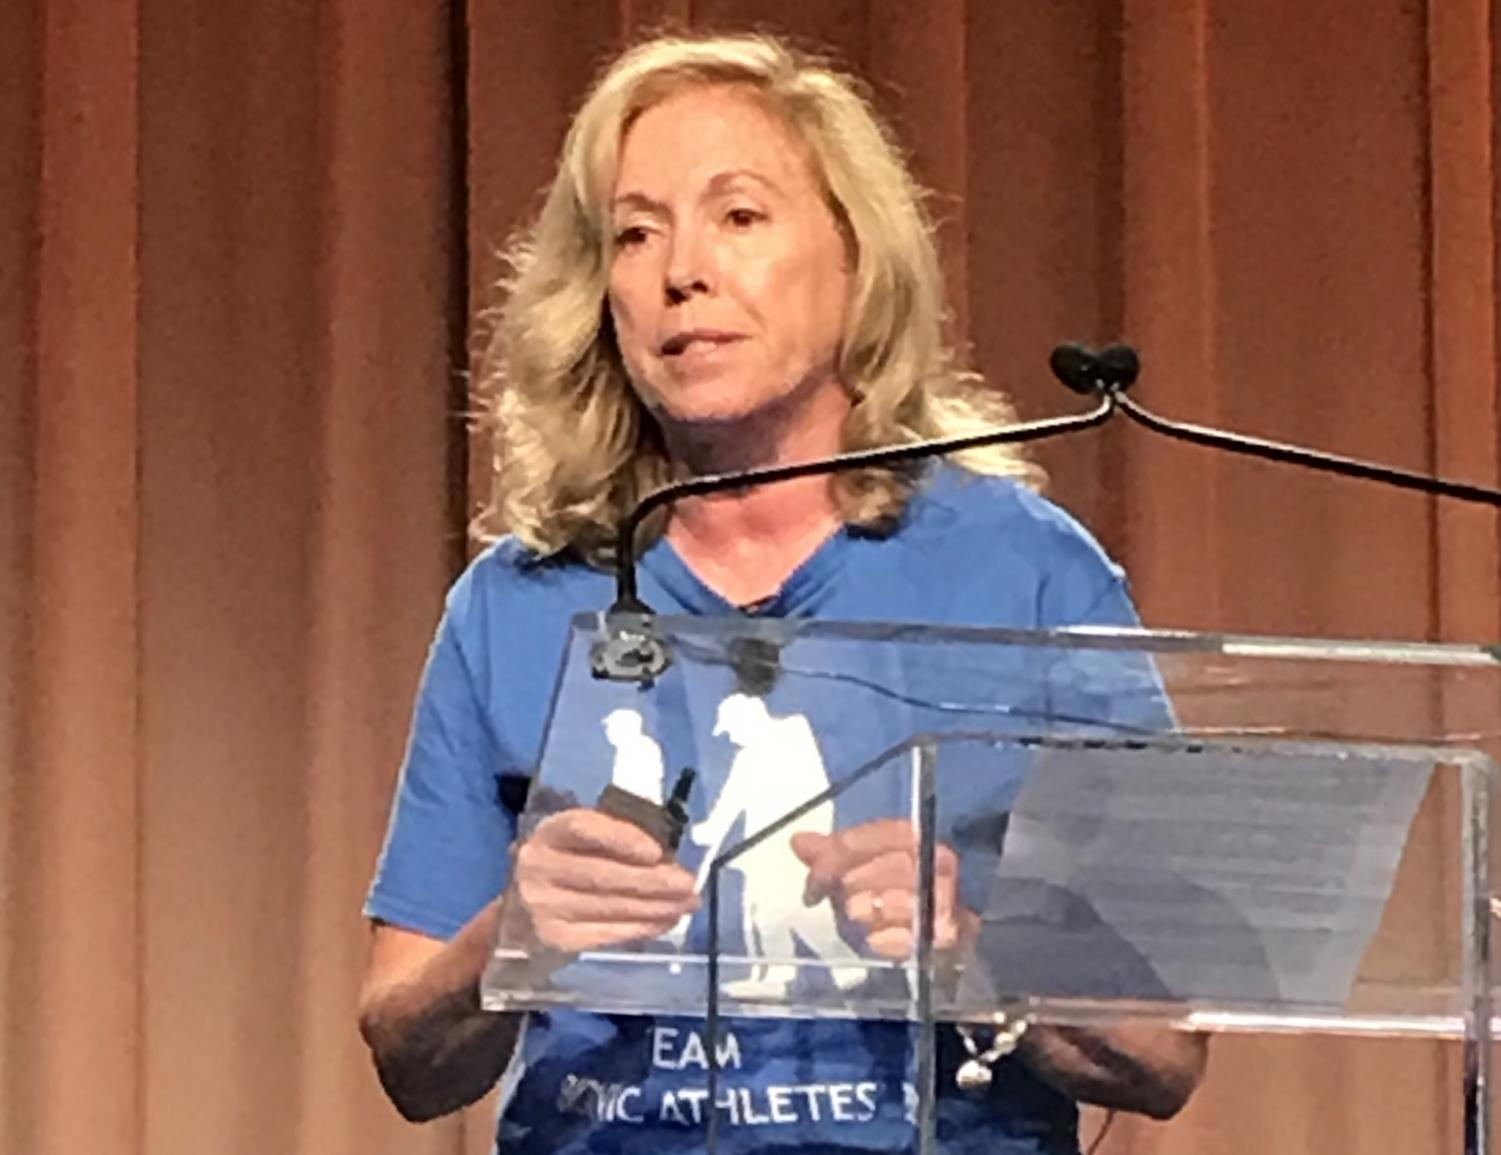 Dr. Ann Spungen, a spinal cord researcher at Icahn School of Medicine at Mt. Sinai University, speaks at a panel discussion about exoskeleton, robotic  technology for paralysis patients at the No Barriers Summit in New York City on Oct. 5, 2018.